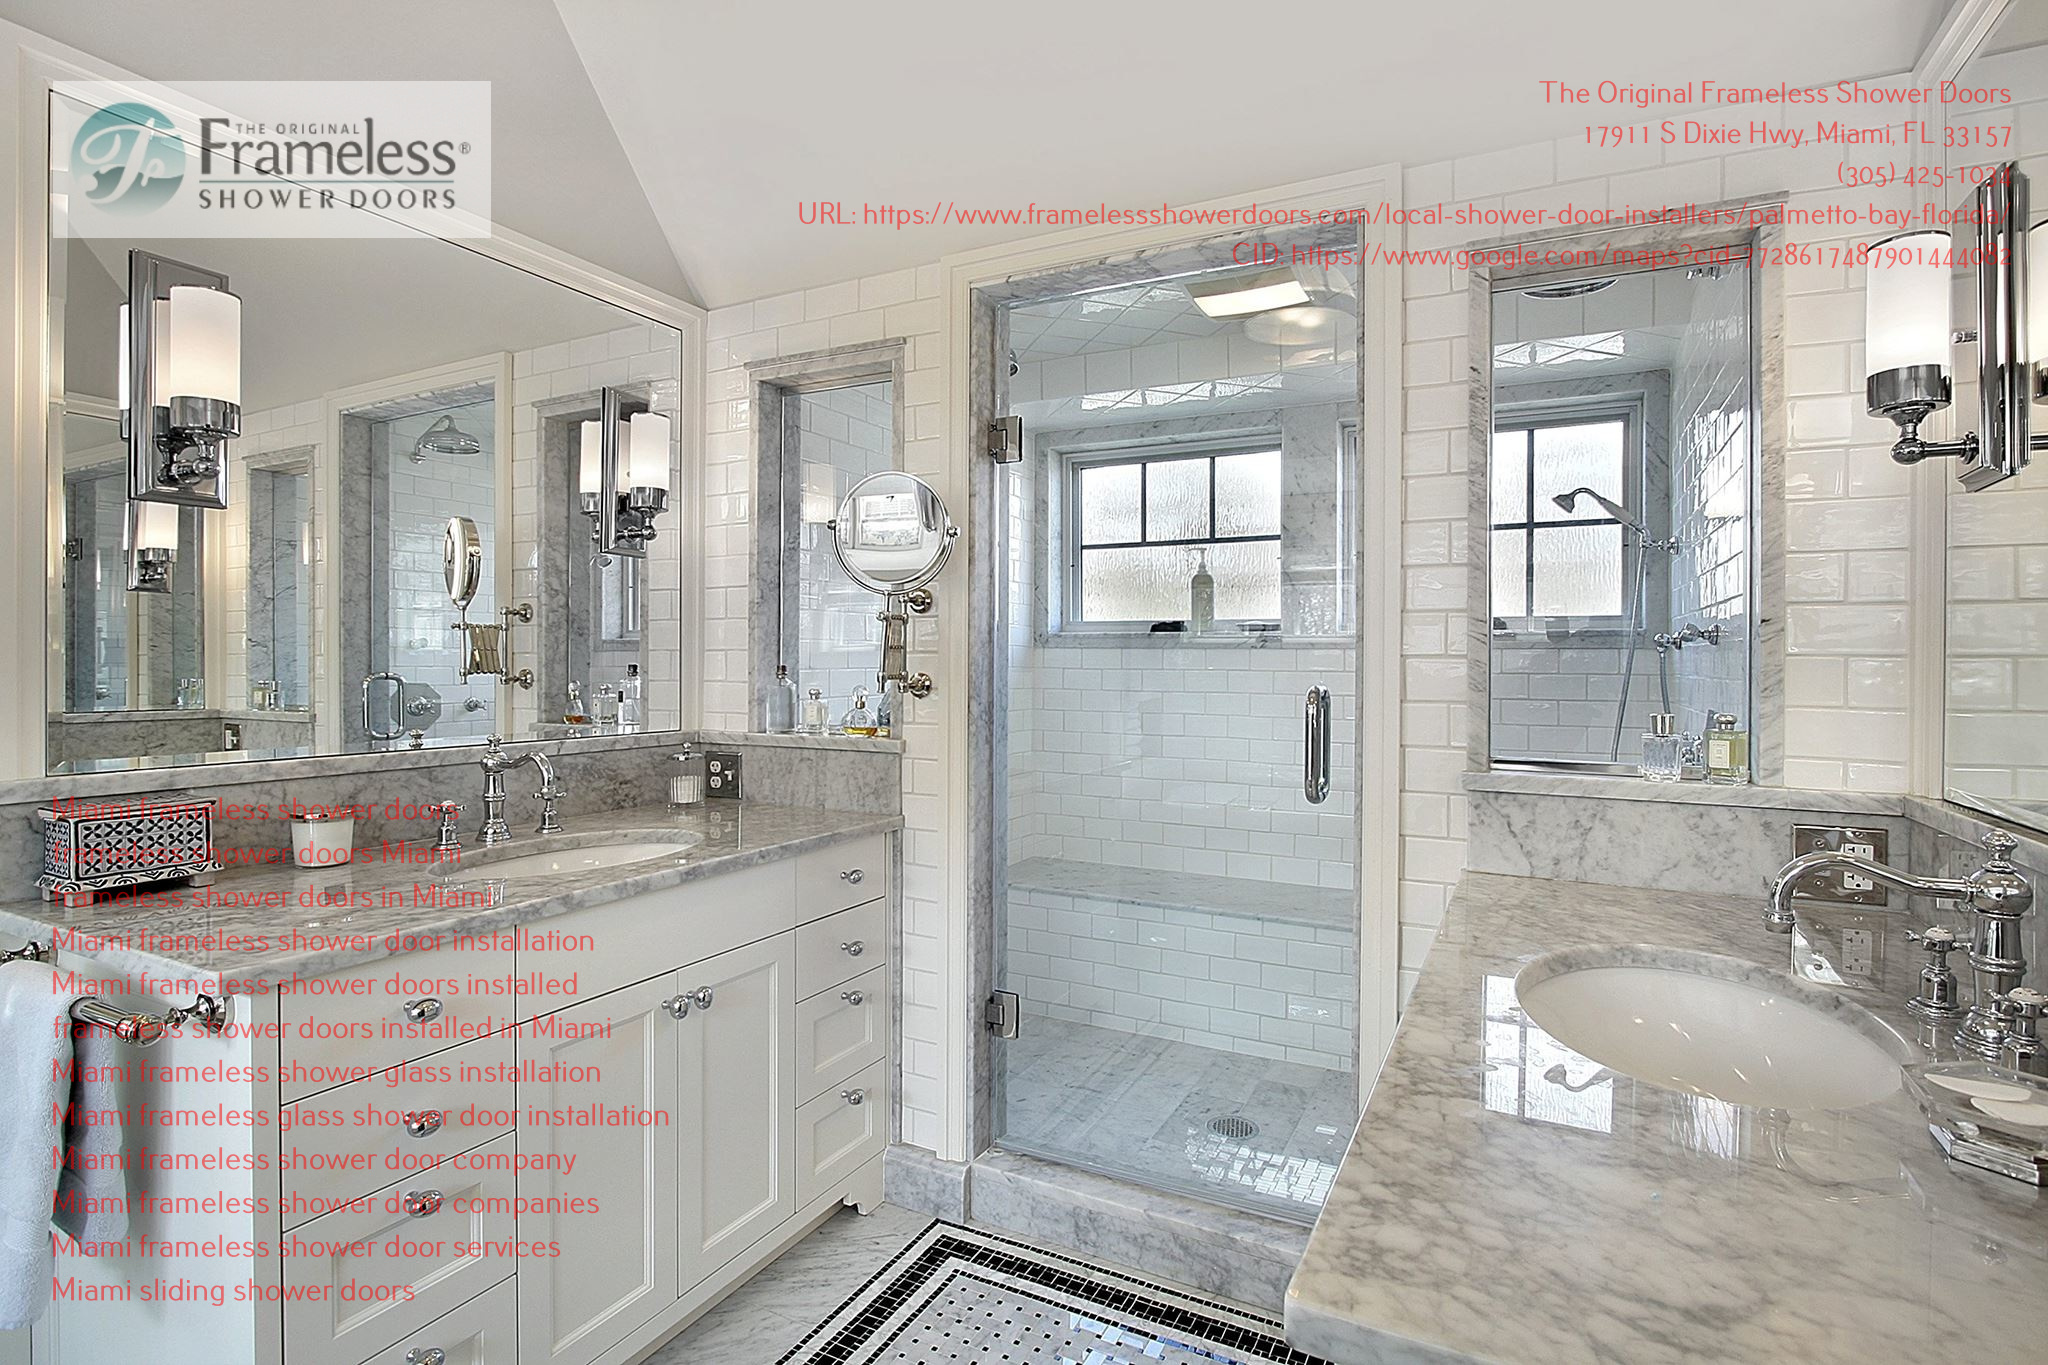 The Original Frameless Shower Doors Company in Miami Announces Addition of Revolutionary New Technology